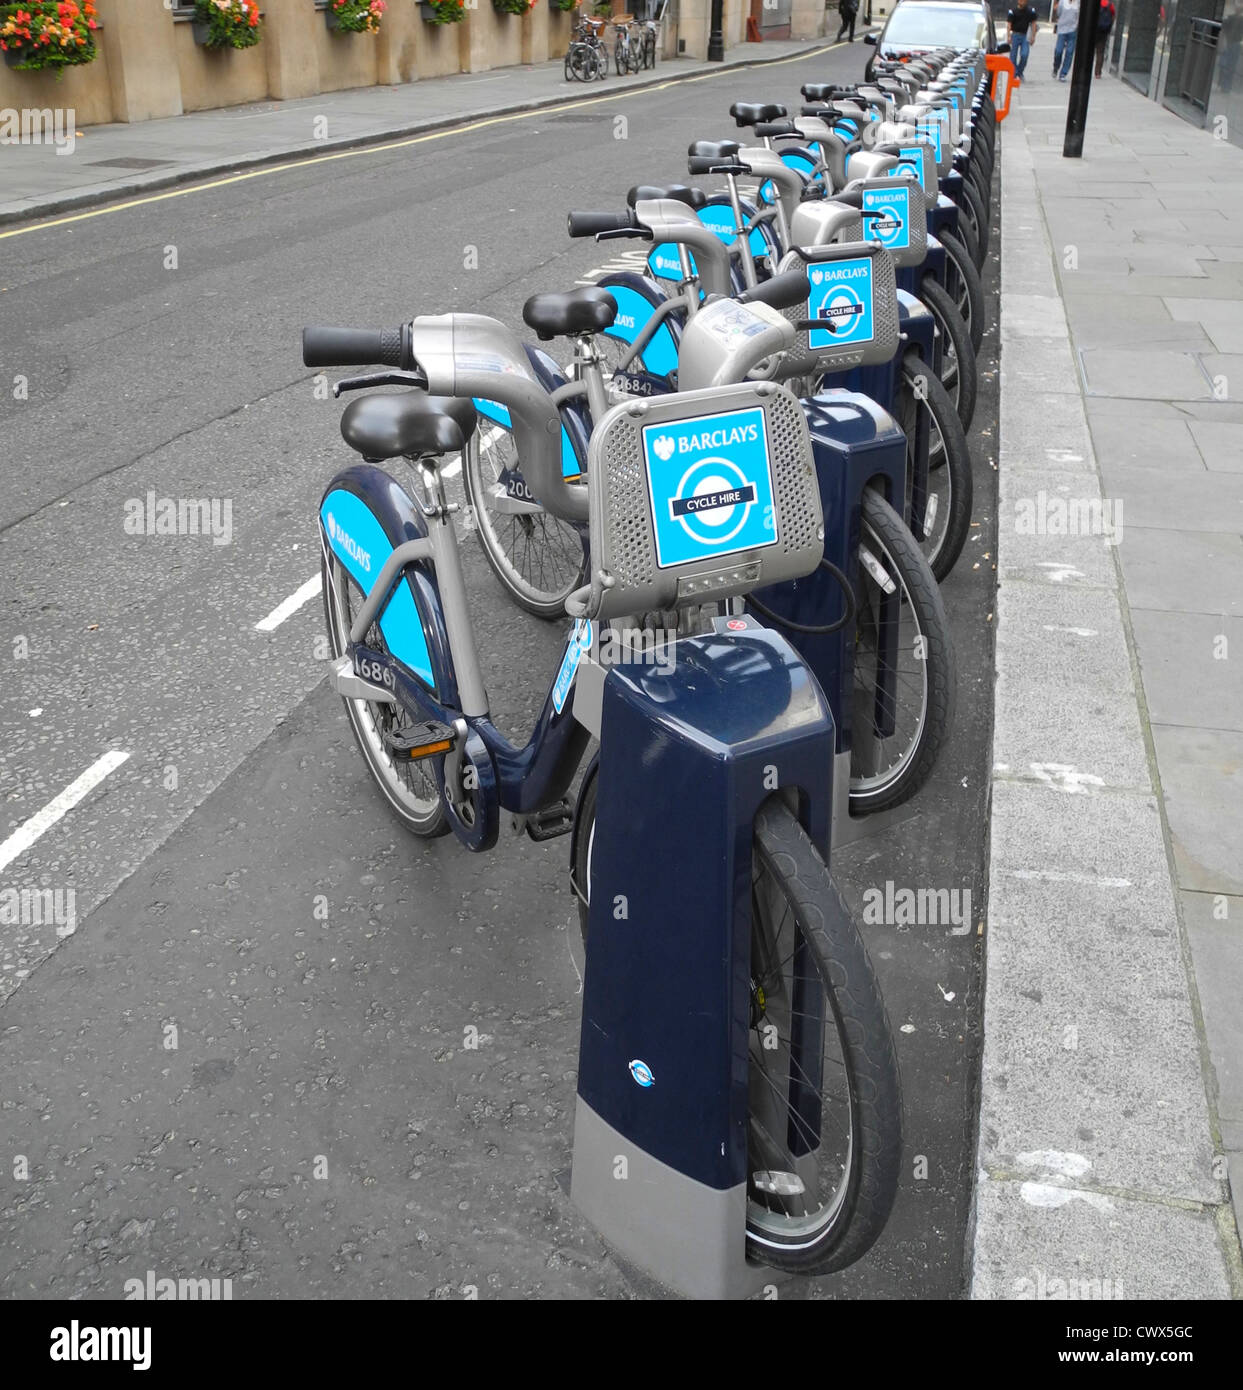 No shortage of bikes bicycles cycles for hire in London - EDITORIAL USE ONLY - Stock Image